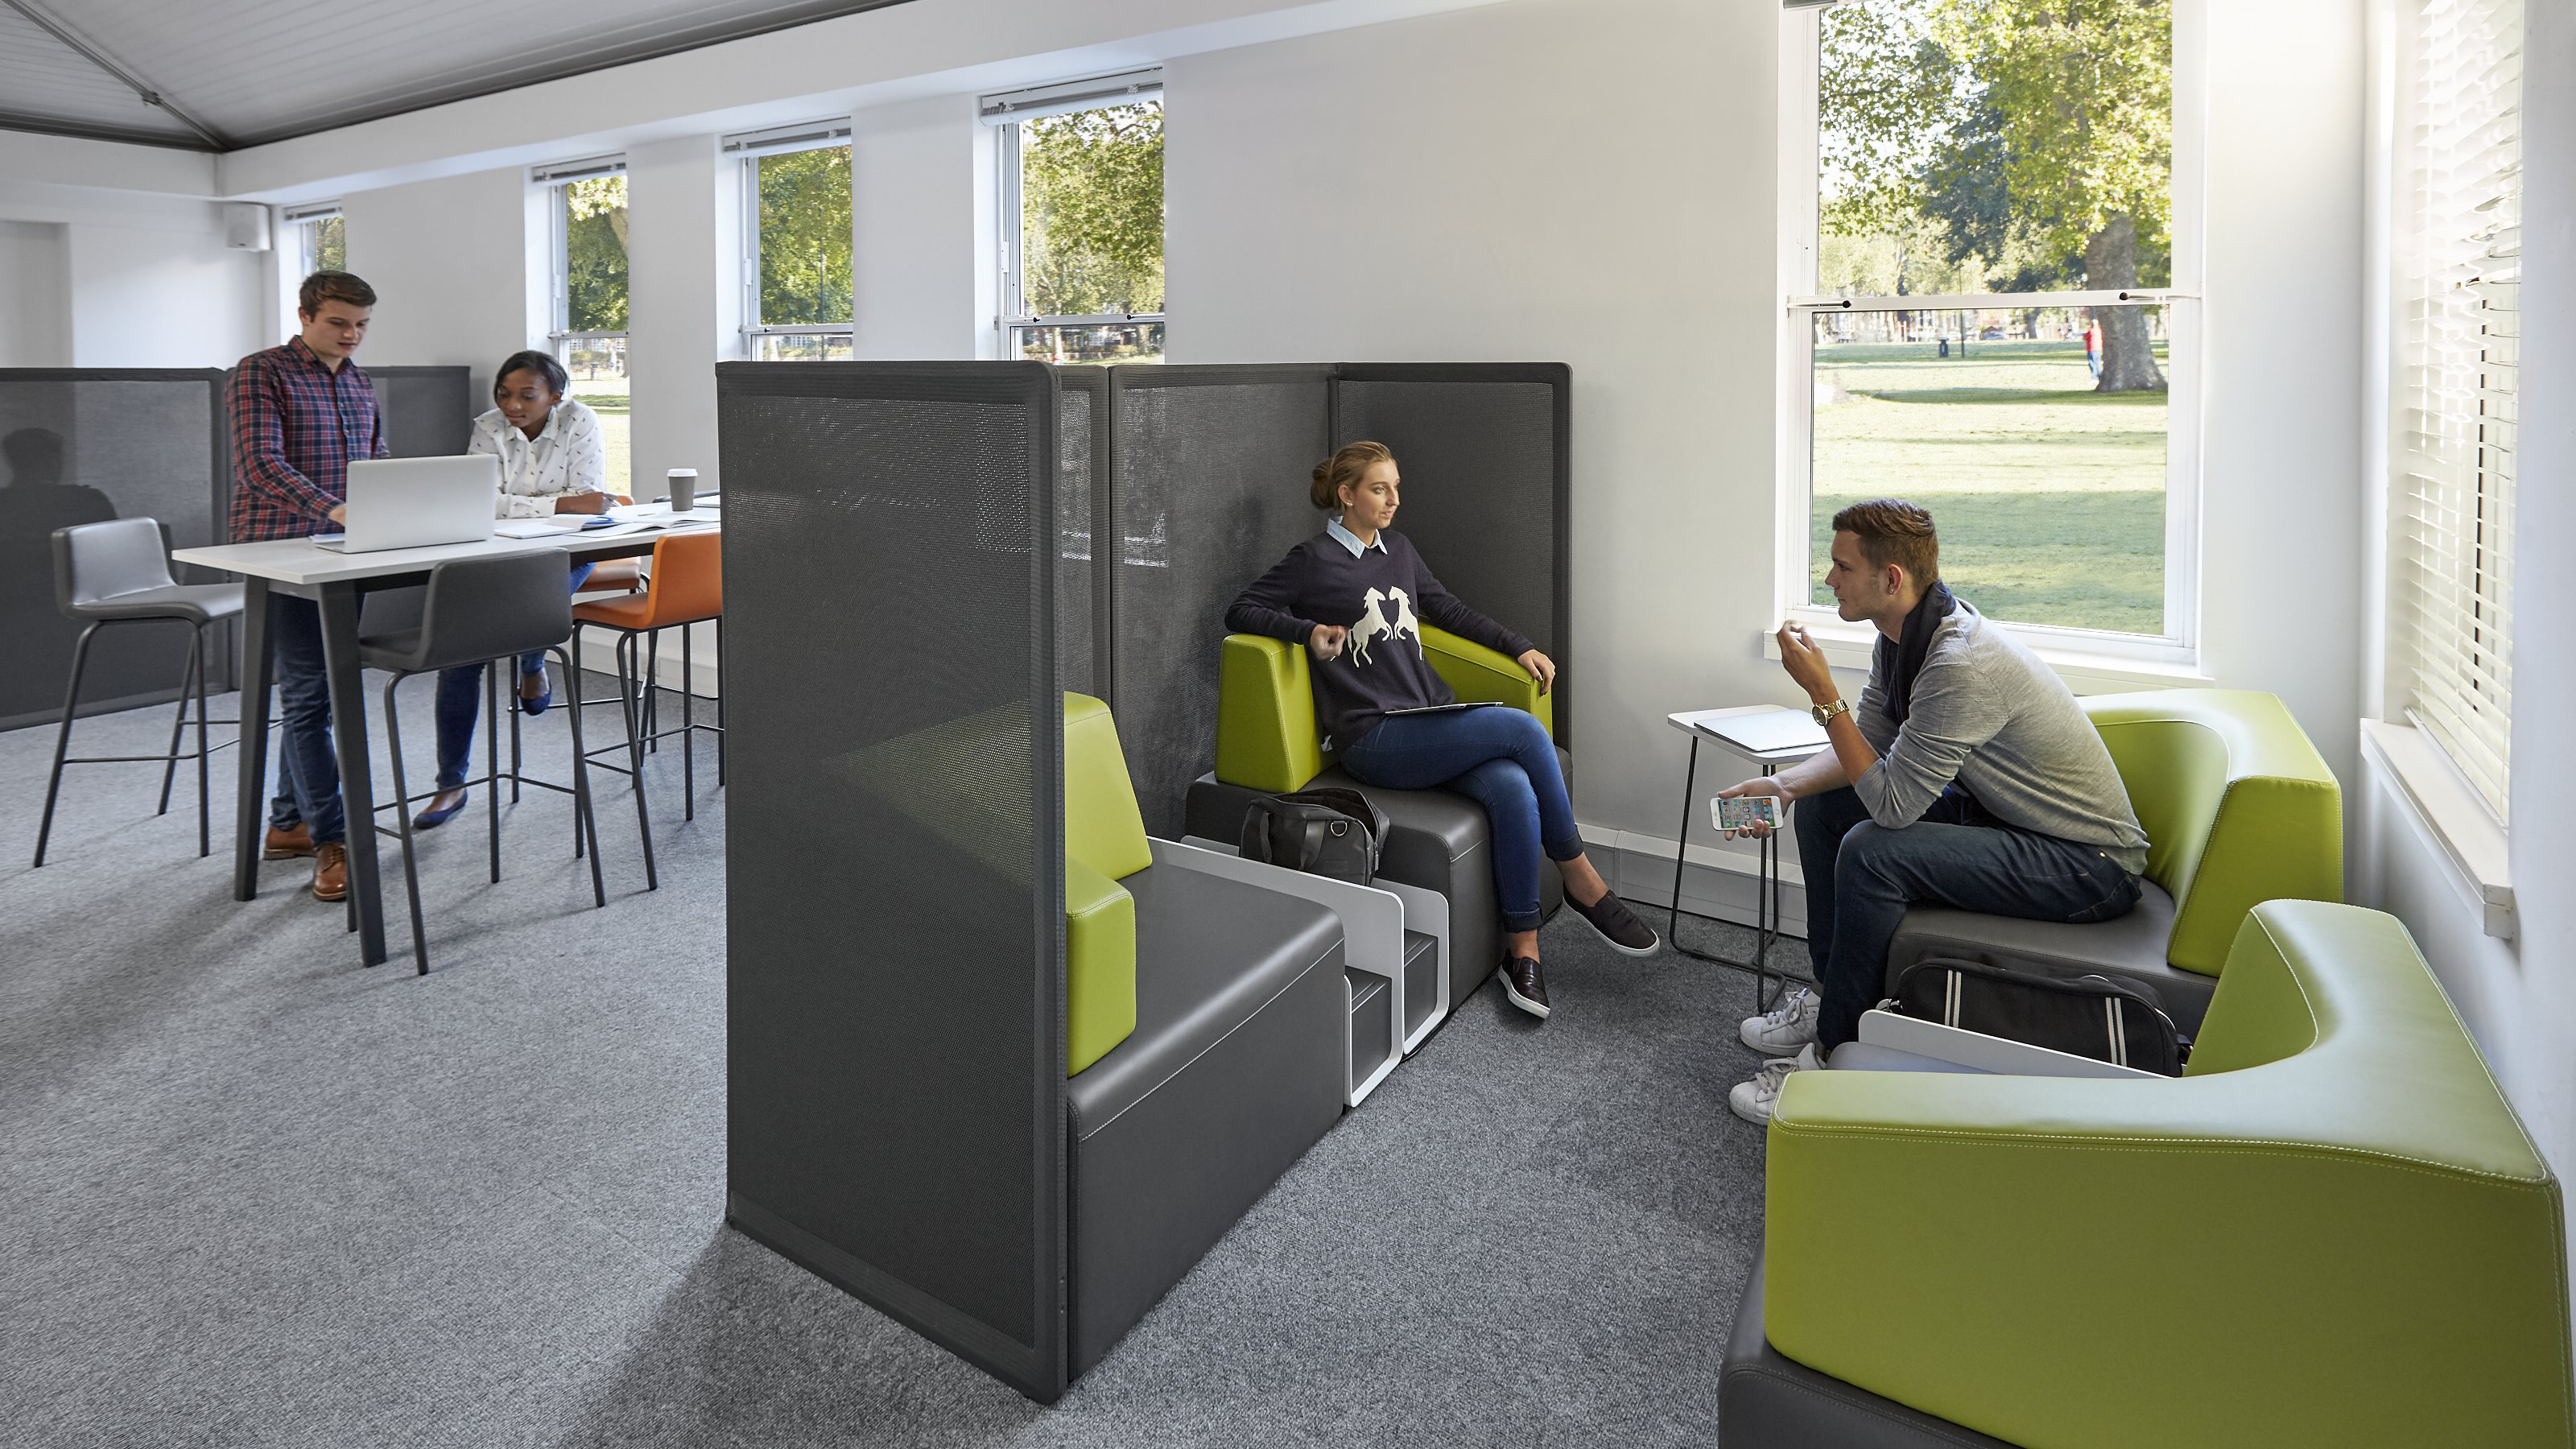 Rooms: Breakout Spaces For Learning Environments